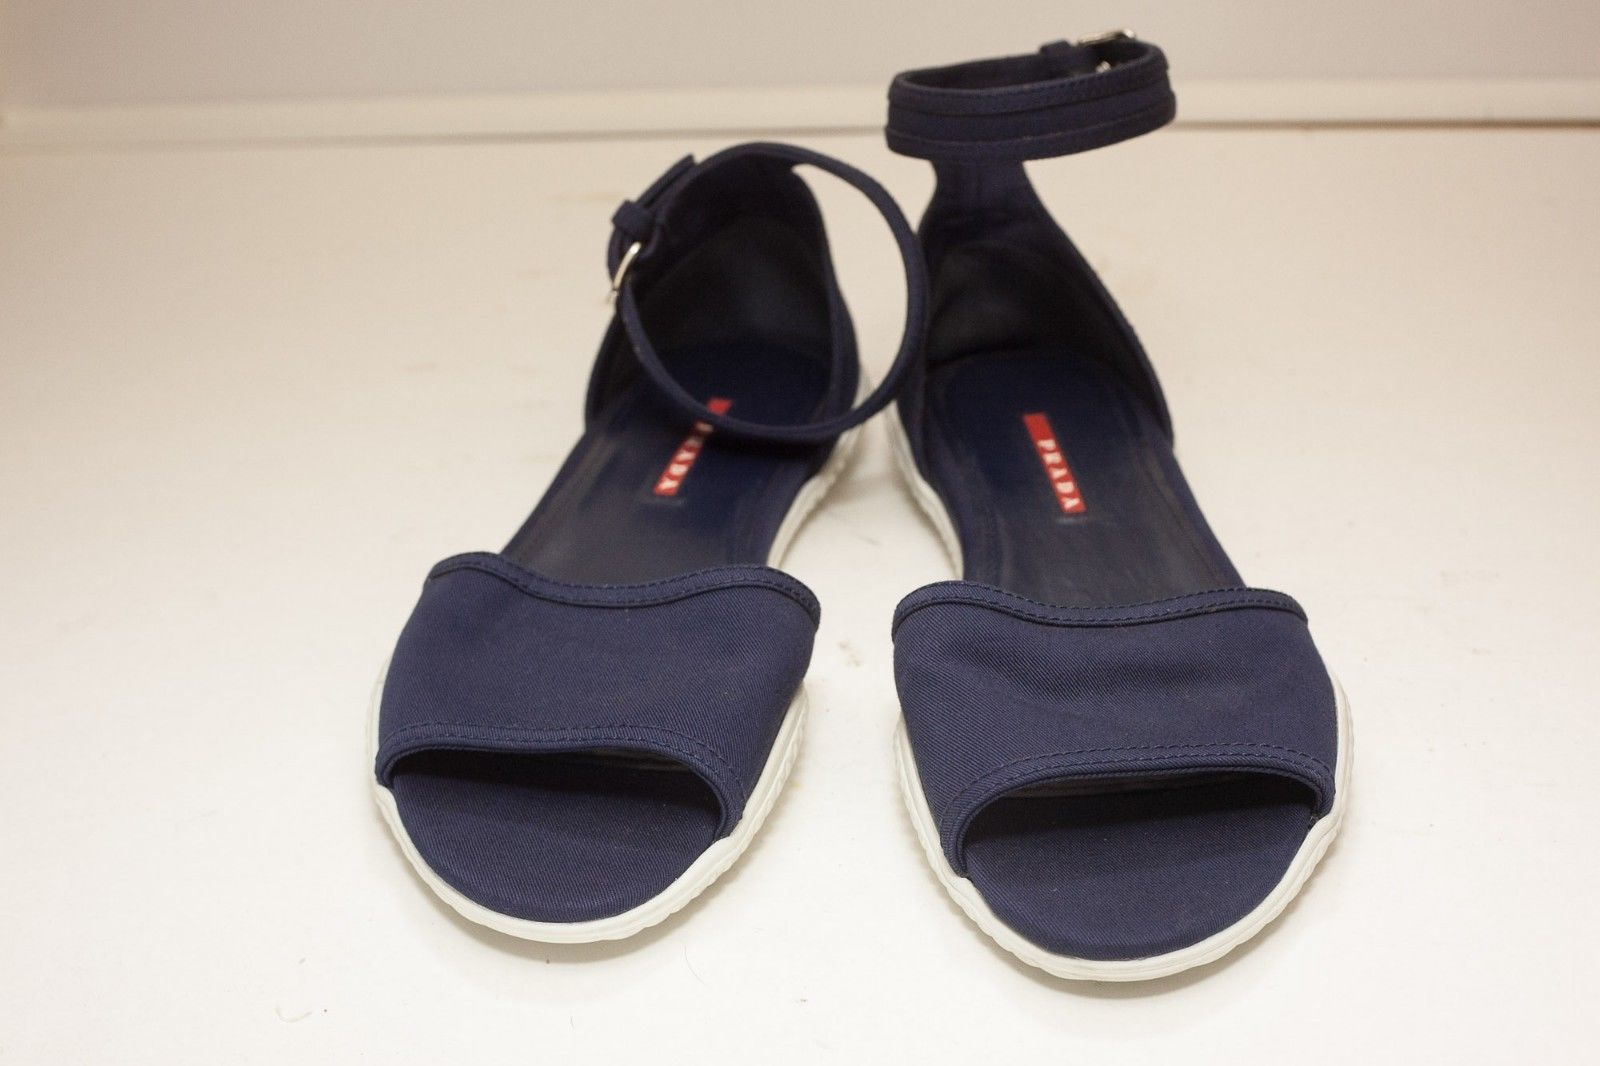 Prada US 9.5 to 10 Blue Sandals Women's EUR 41